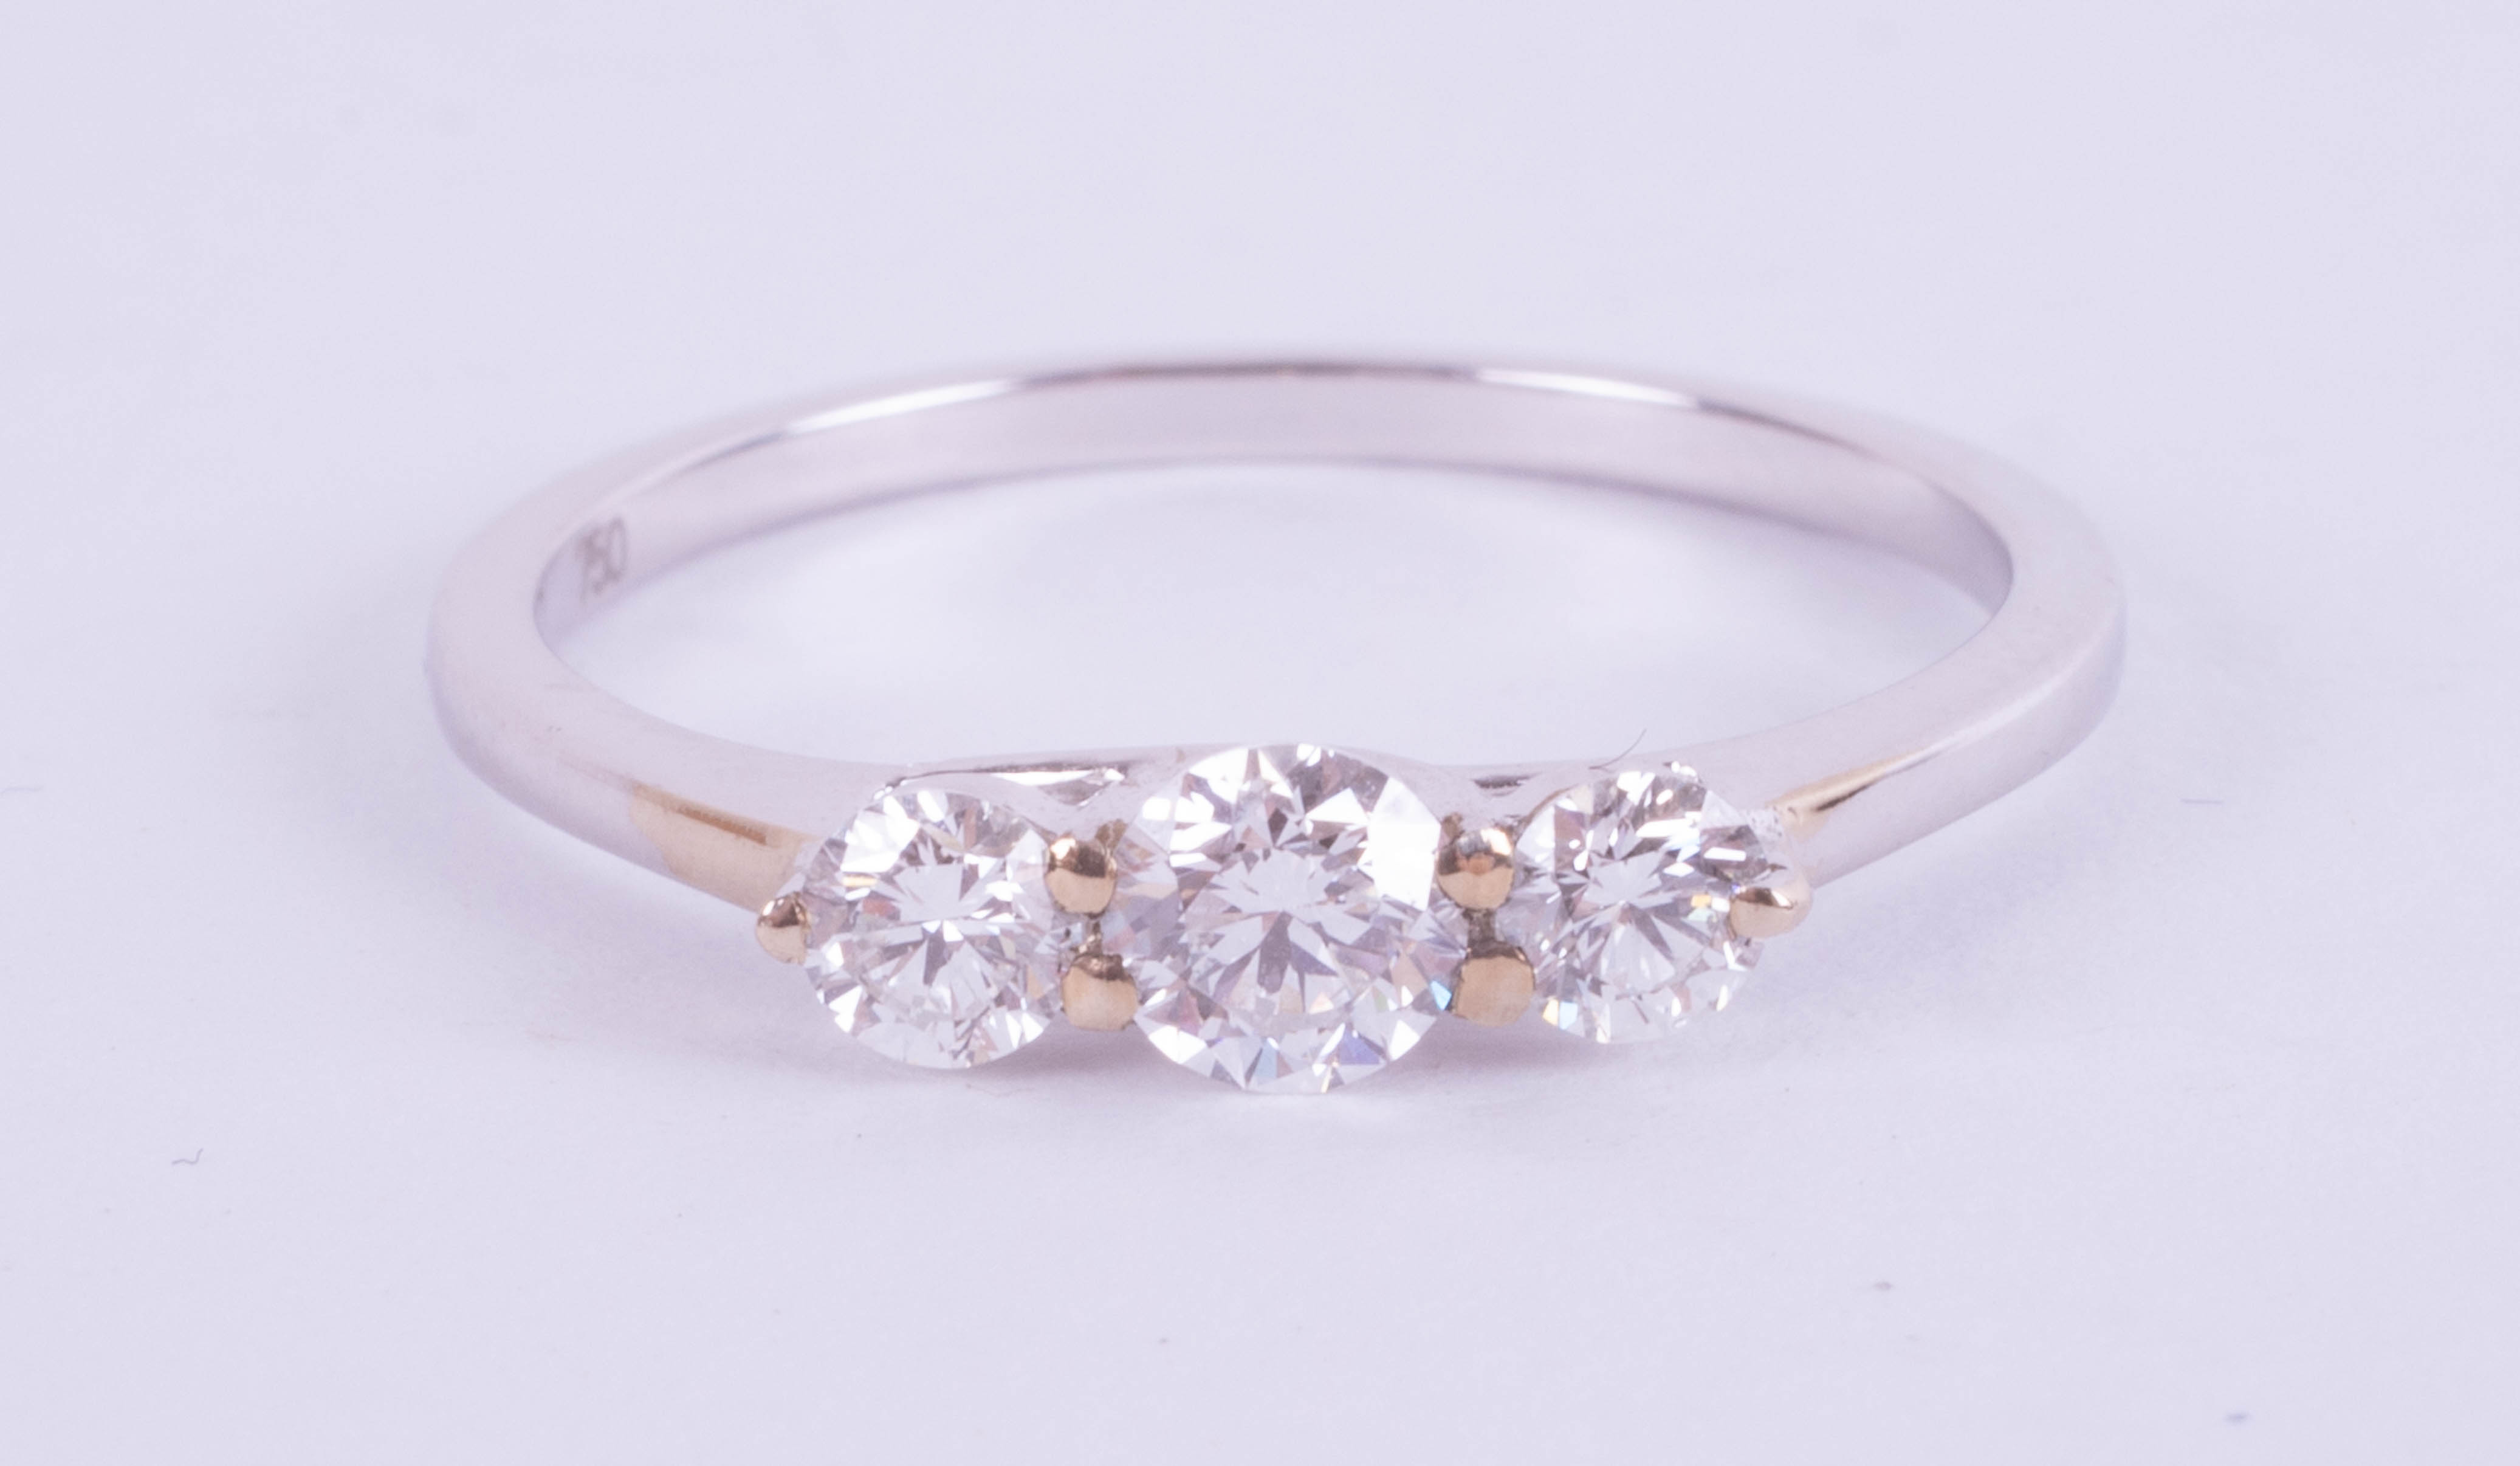 An 18ct white gold trilogy ring, approx. 0.50ct, estimated colour E, clarity SI1, ring size M.